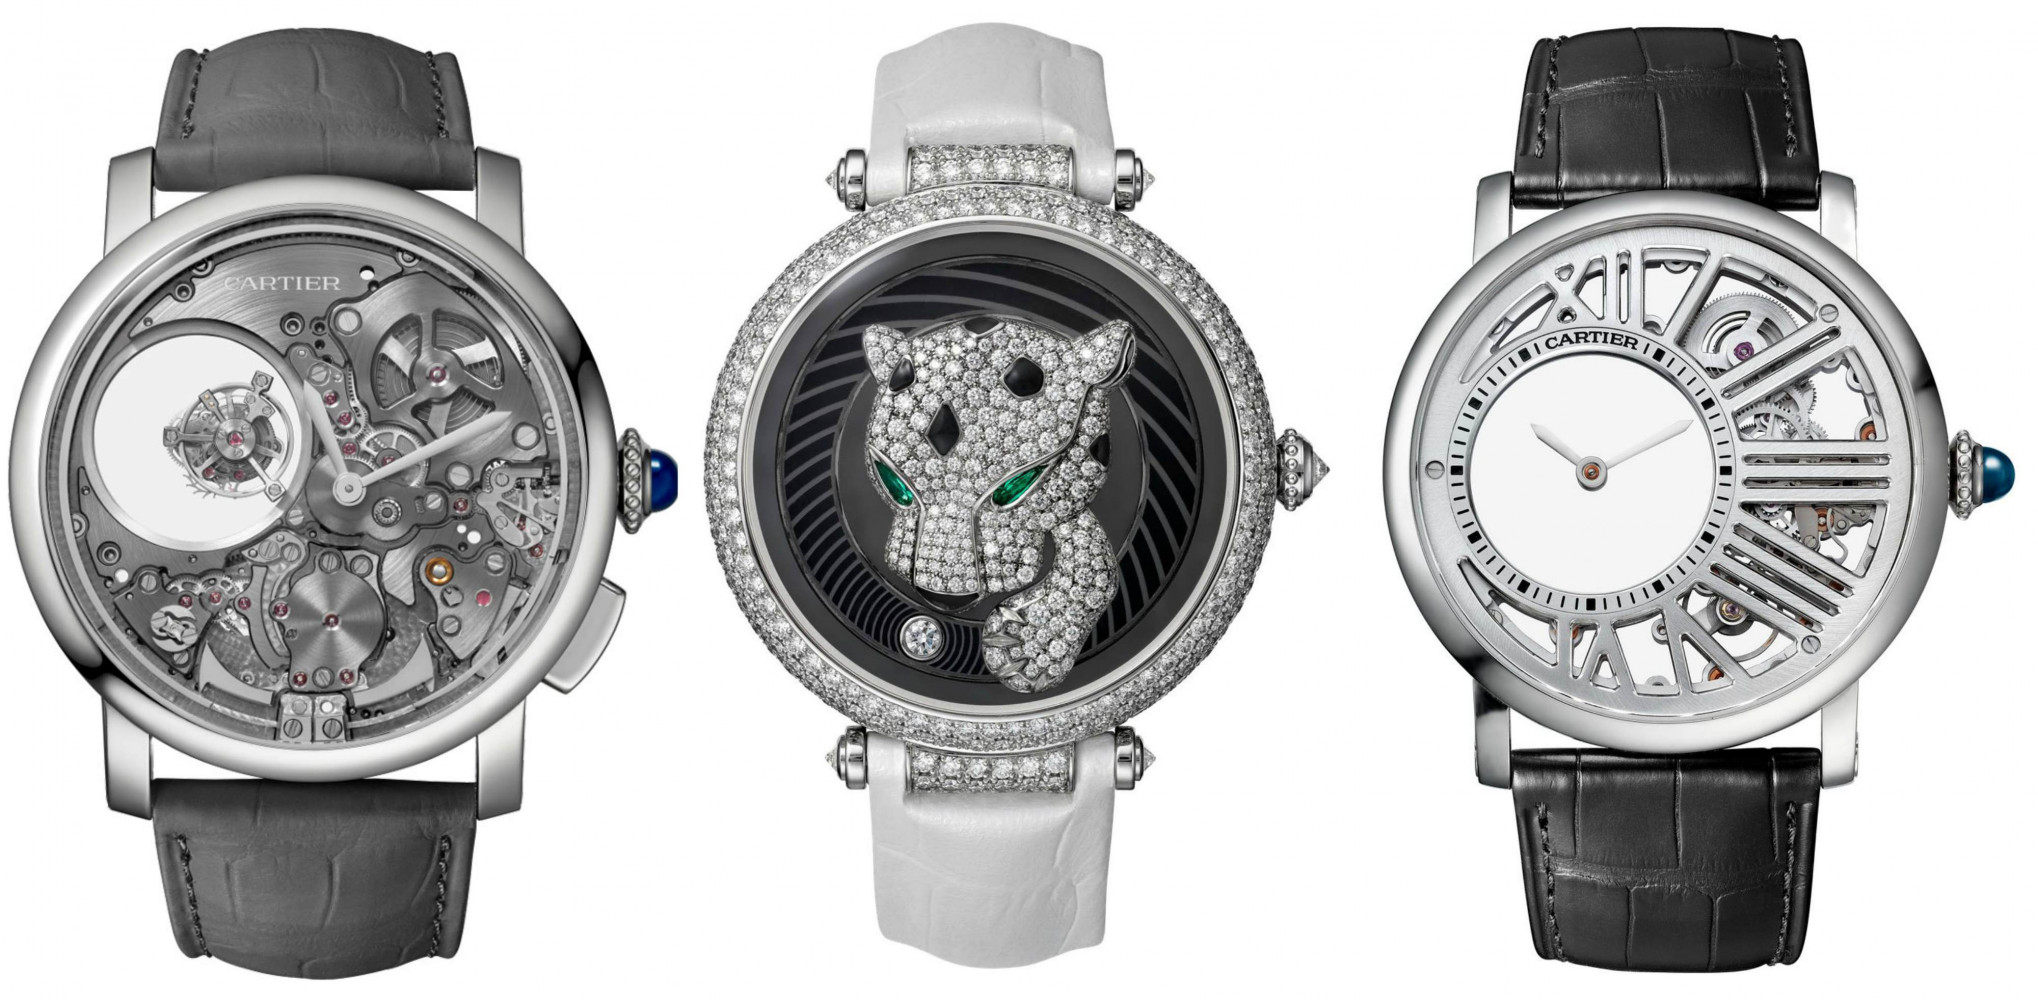 Cartier watches for SIHH 2017